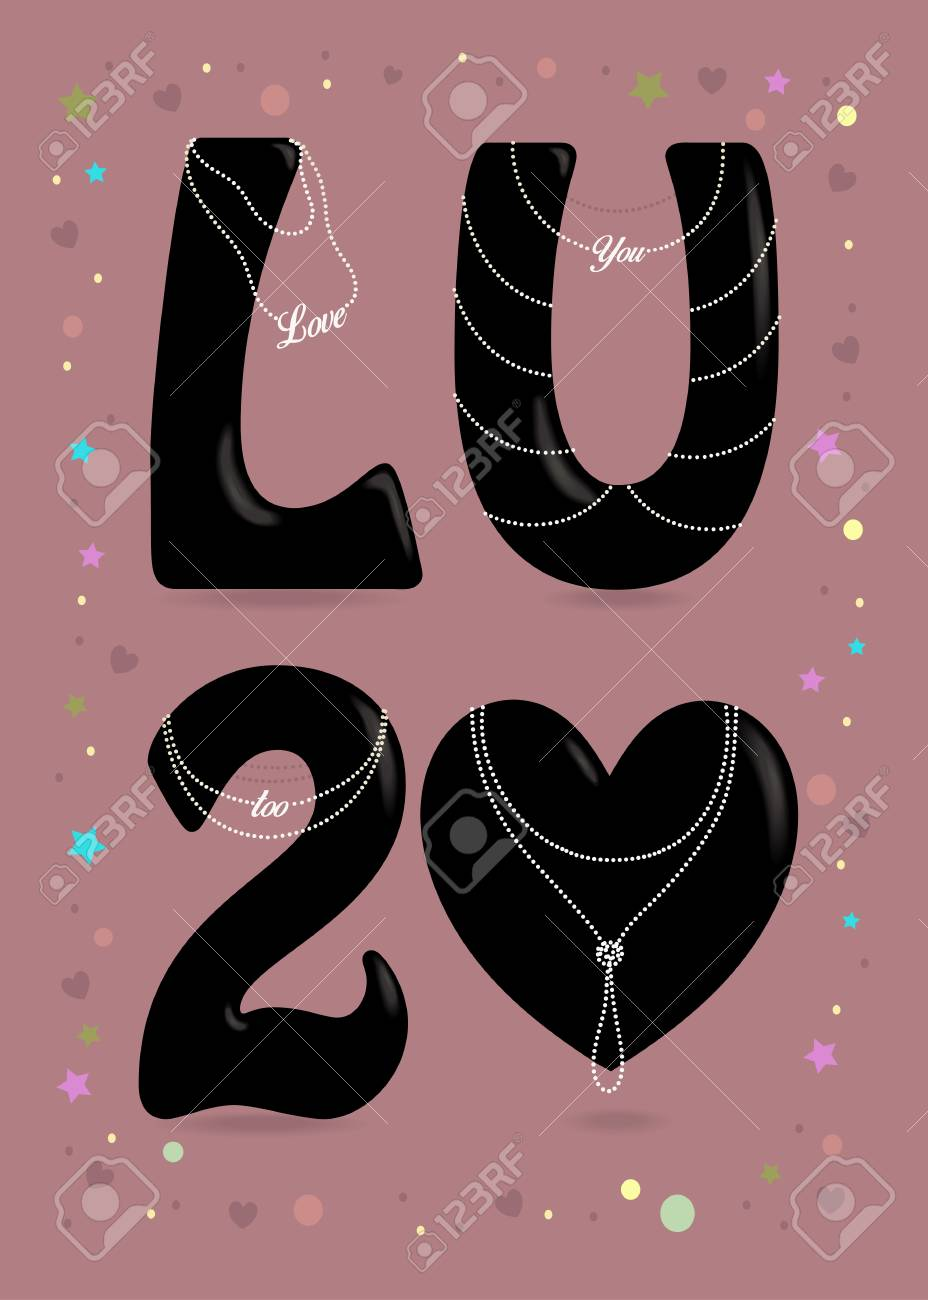 Love You Too Black Big Heart And Letters L U And Number 2